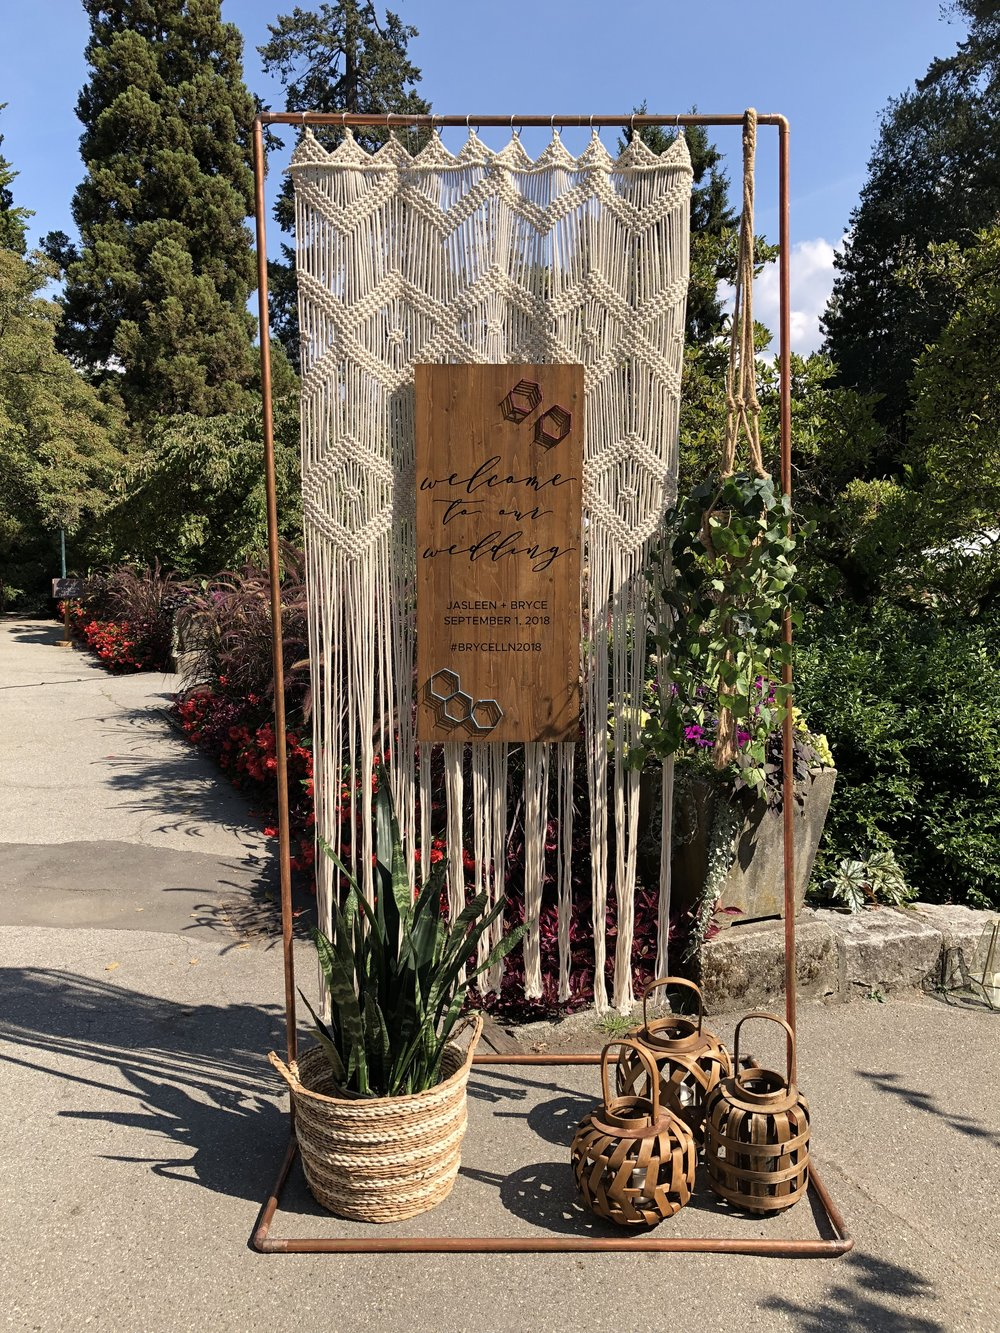 macrame arch + welcome sign   Quantity: 1  Price: $250.00